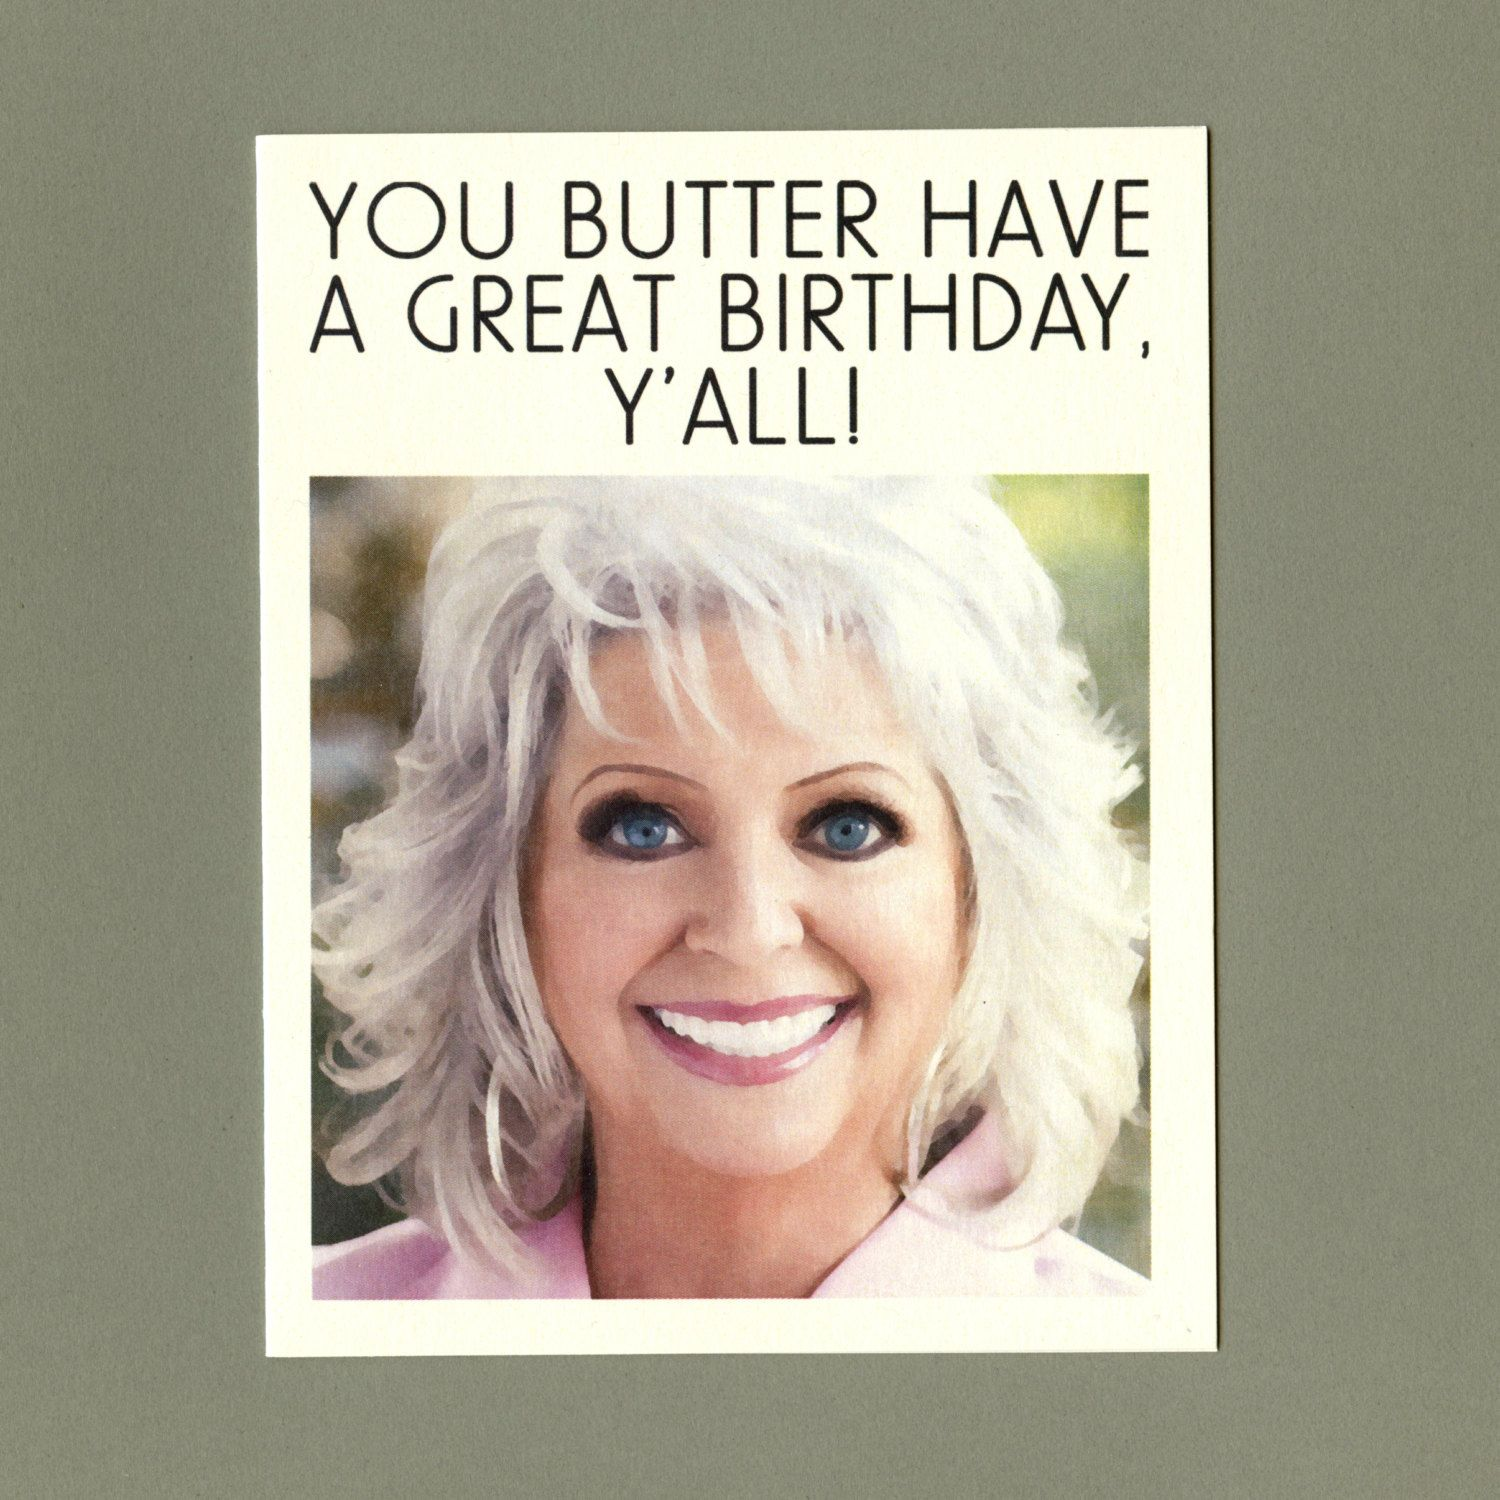 Paula Deen Birthday Funny Birthday Card Now With More Butter Y